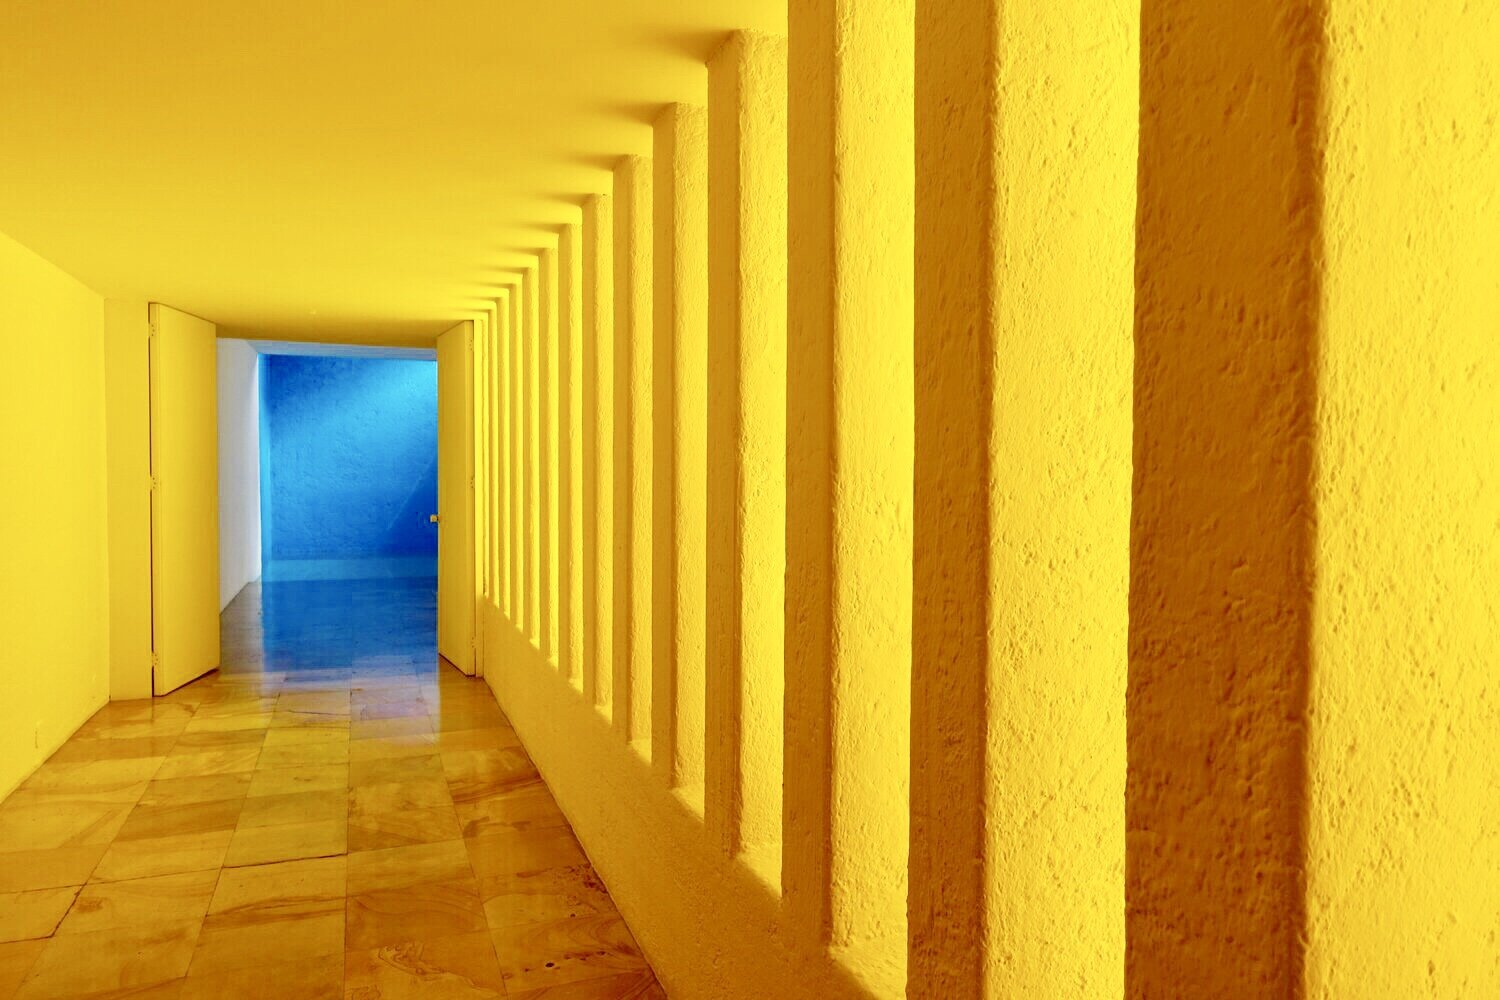 Don't miss our 'What to see' section below, featuring some of architect Luis Barragán's works.